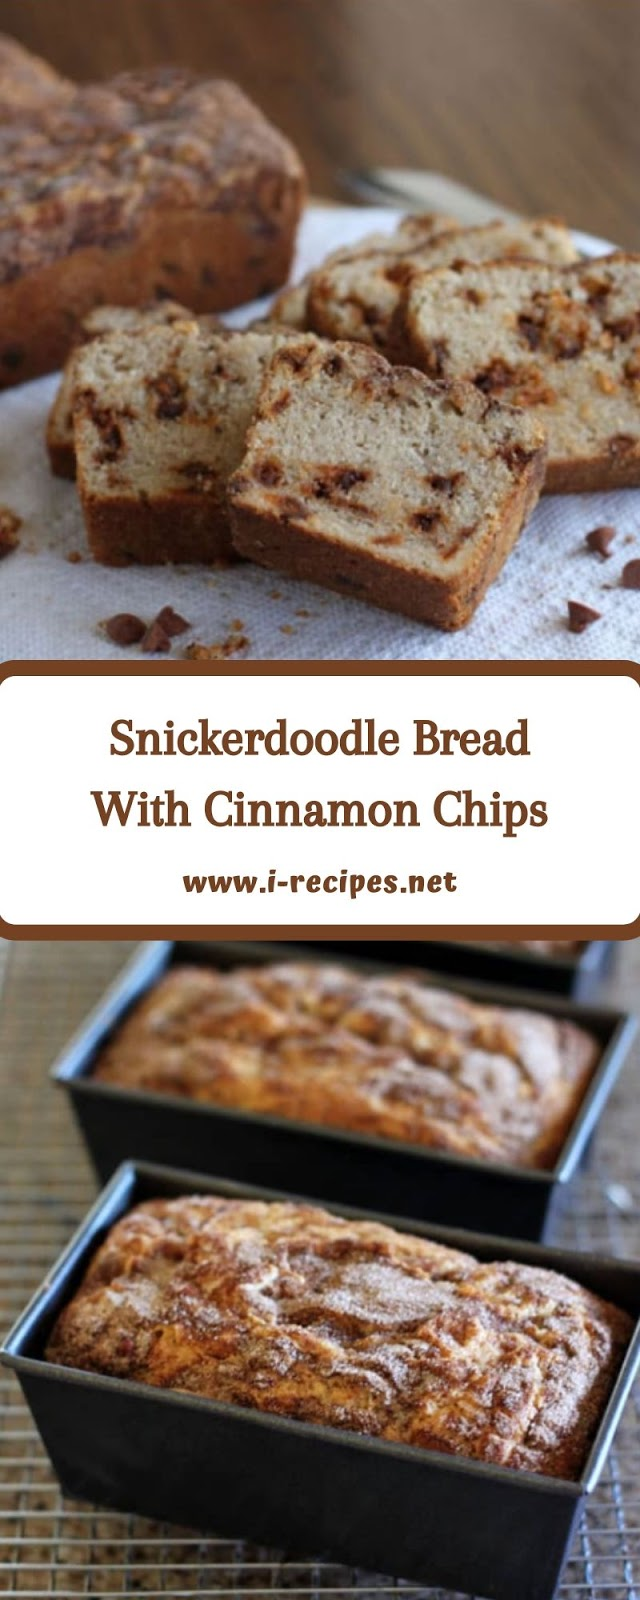 Snickerdoodle Bread With Cinnamon Chips